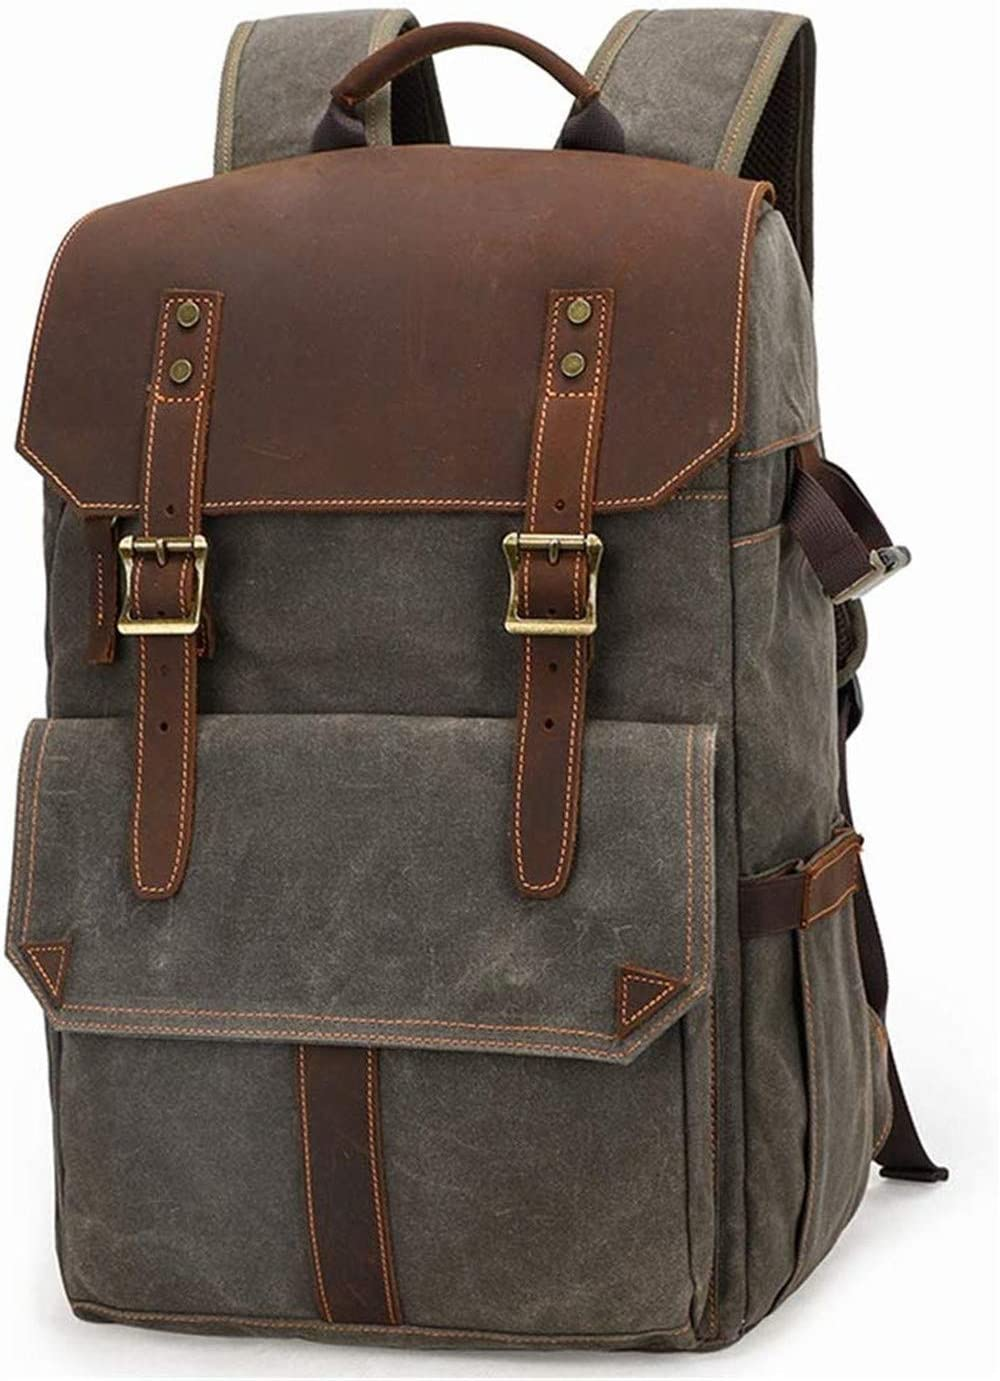 LHY Camera Backpack Waterproof Camera Backpack Professional Backpack Large Capacity Travel Vintage SLR Camera Lens Bag